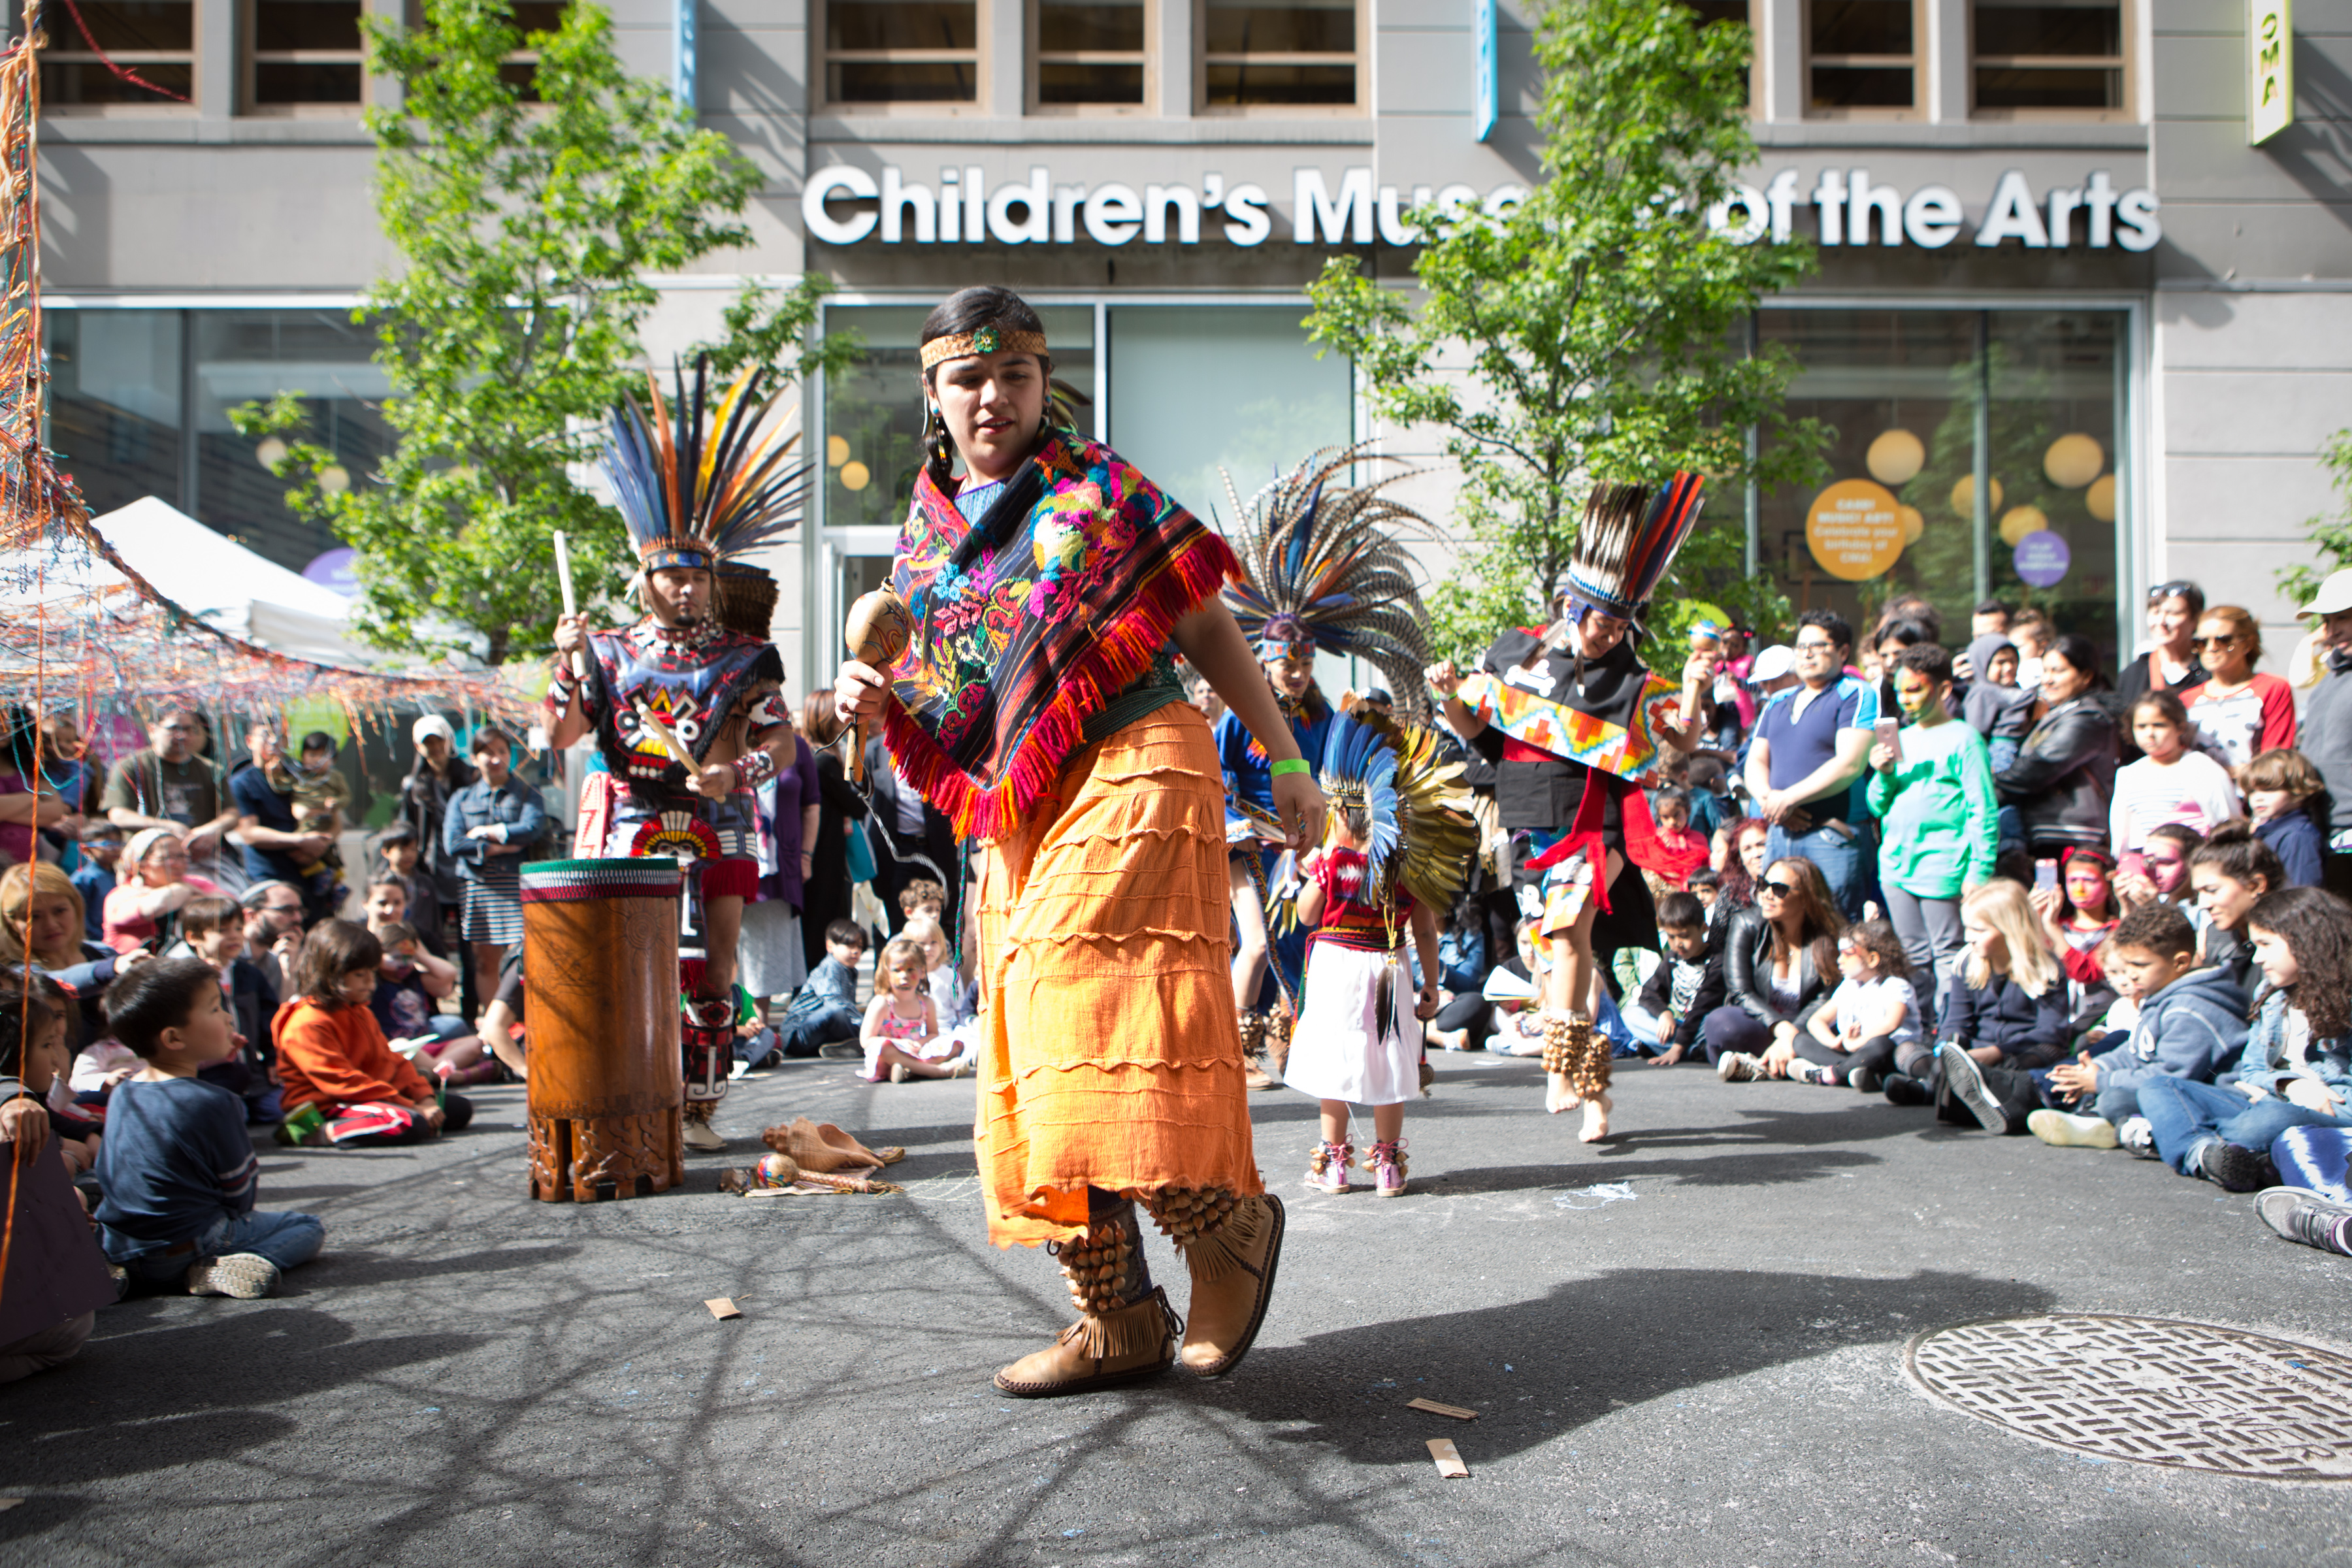 23rd annual Family Day and 2nd annual Kids Fair in NYC